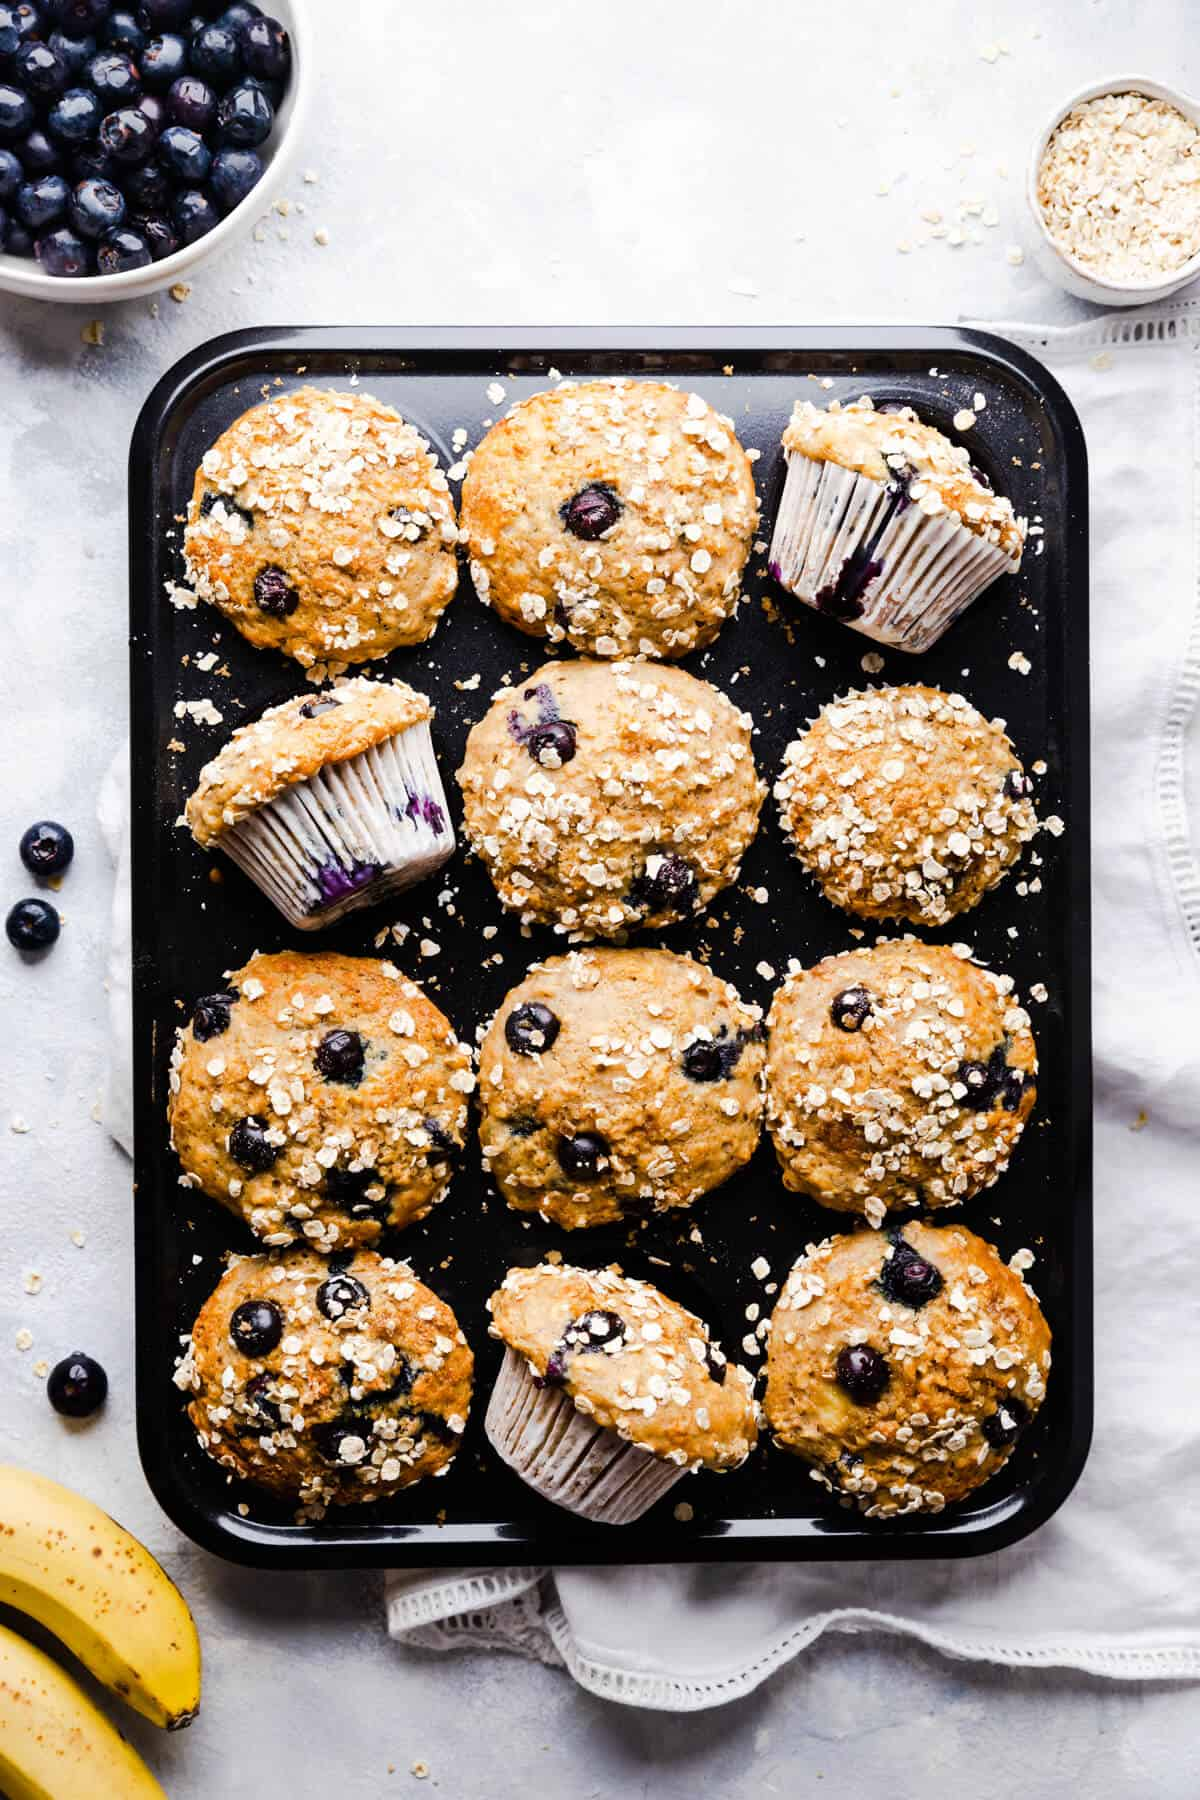 top view of a muffin tin filled with banana and blueberry muffins